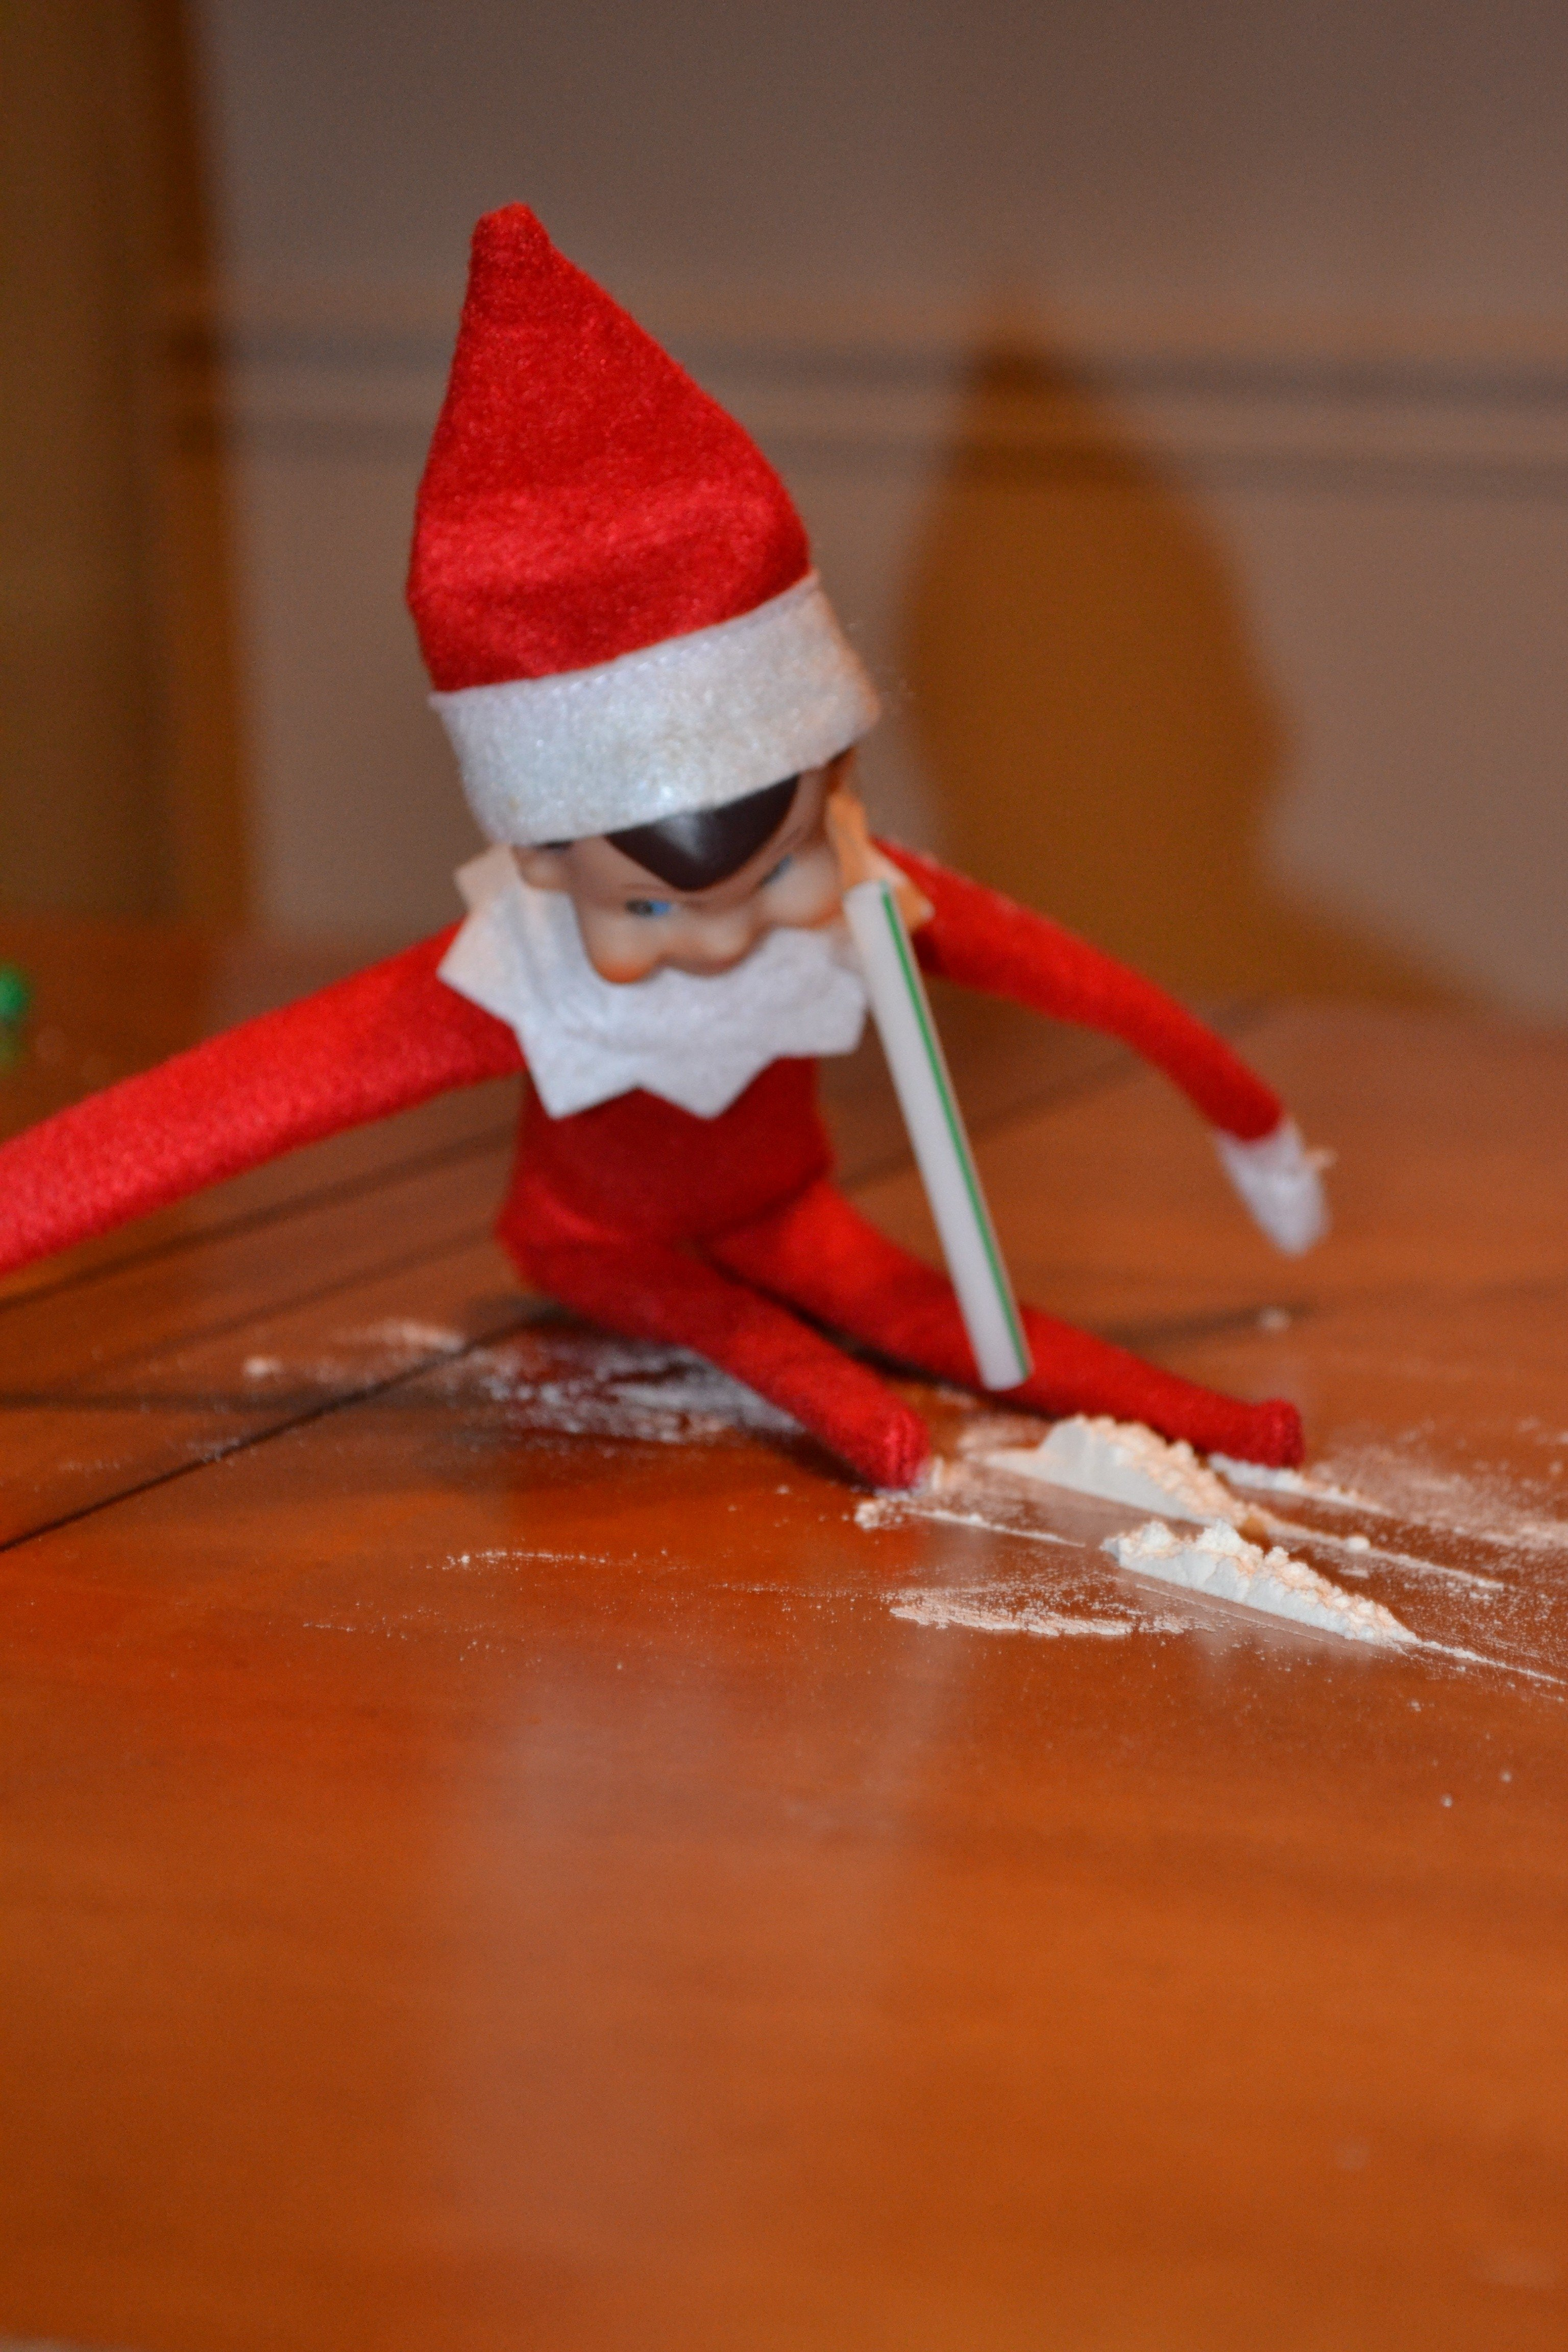 10 Nice Naughty Elf On The Shelf Ideas adult ideas for the elf on the shelf elves shelves and naughty elf 5 2021